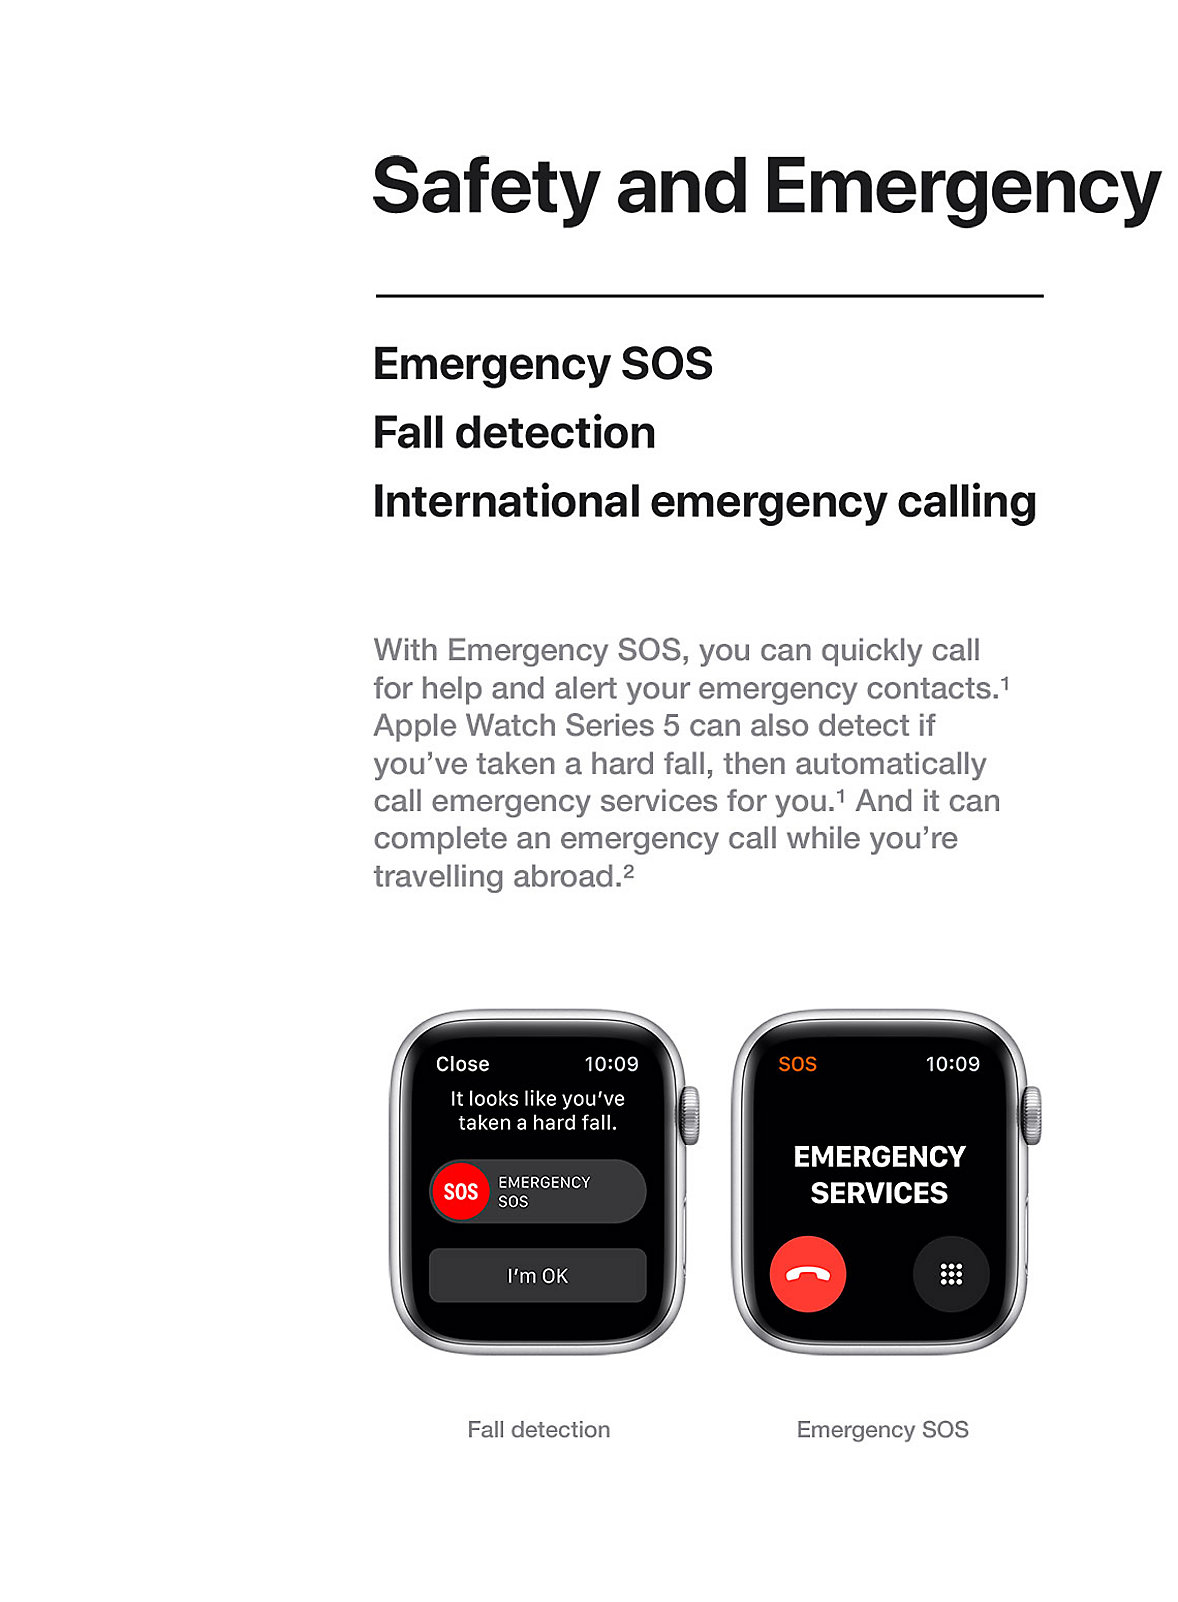 Apple Watch Safety and Emergency Series 5